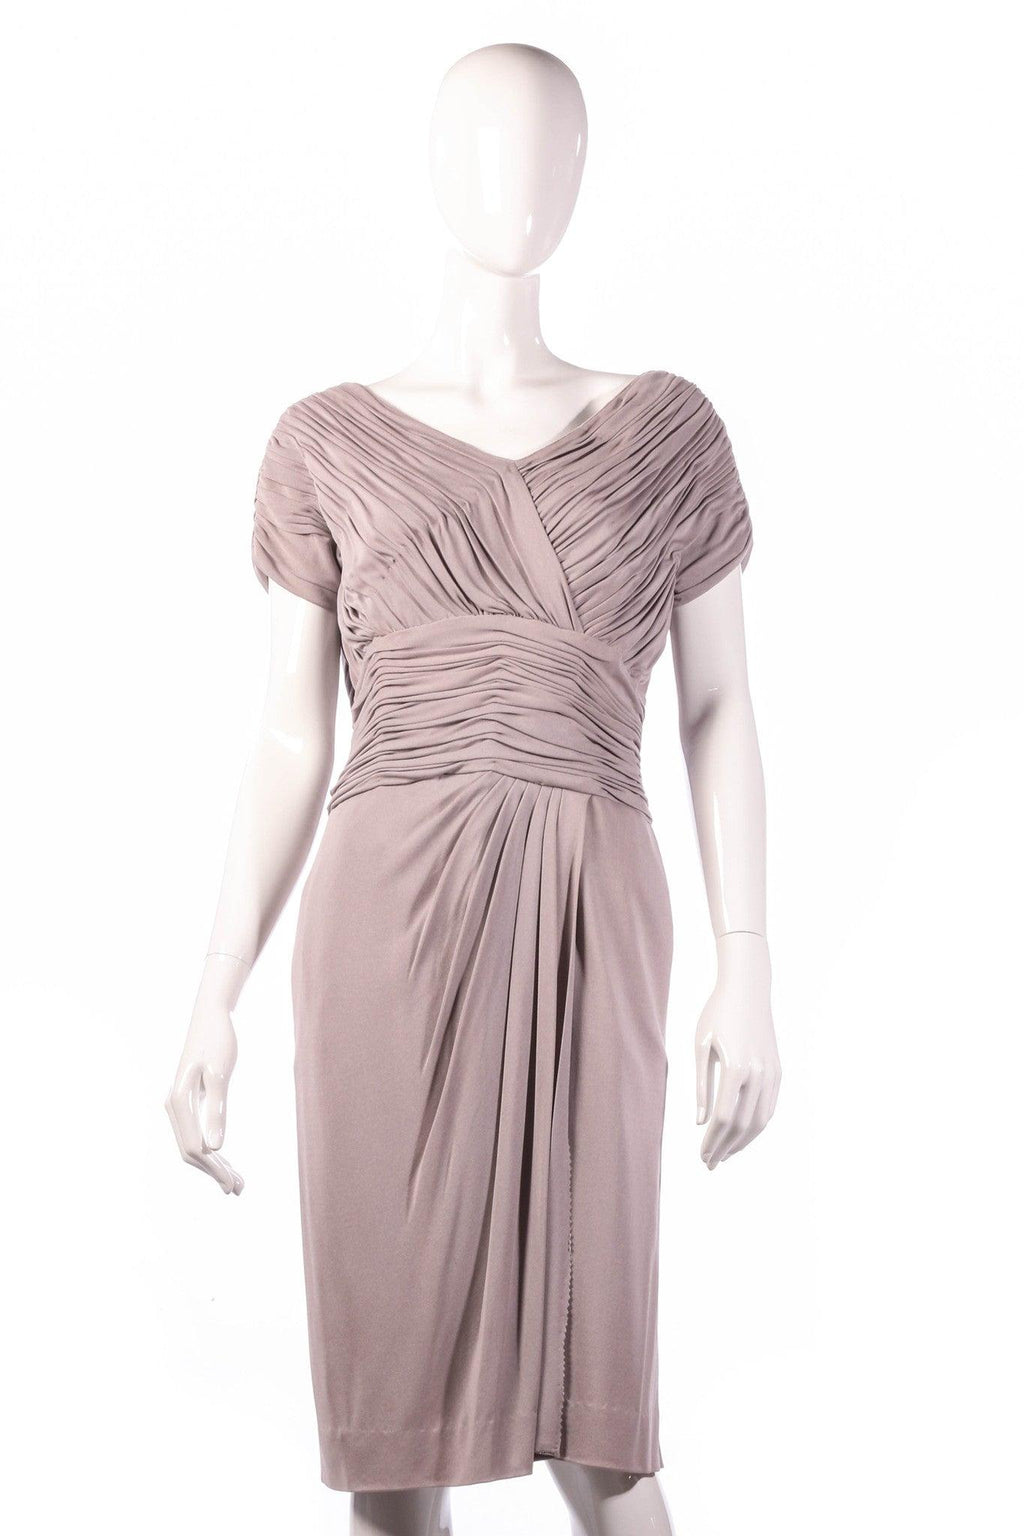 Light grey formal dress